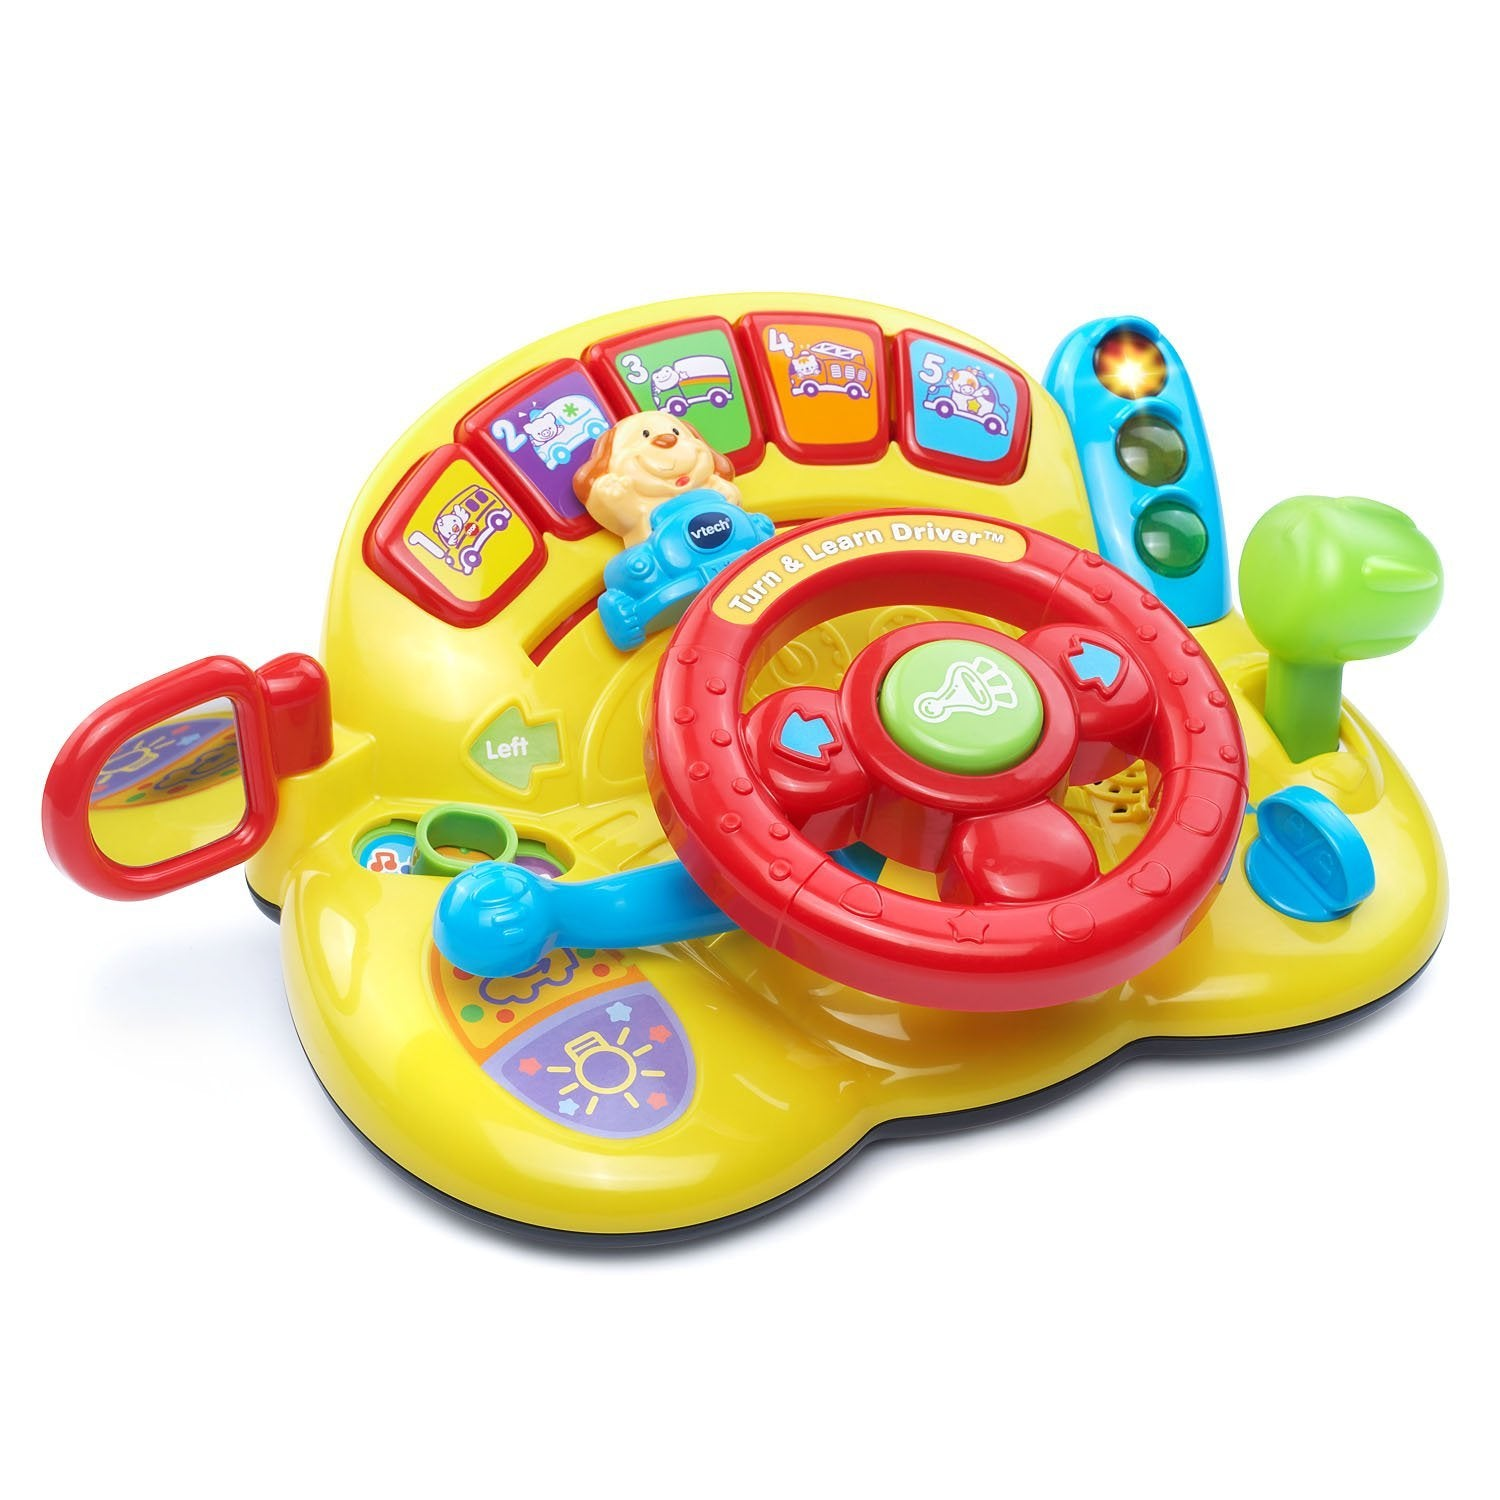 Kids Learn to Drive Toy Steering Wheel